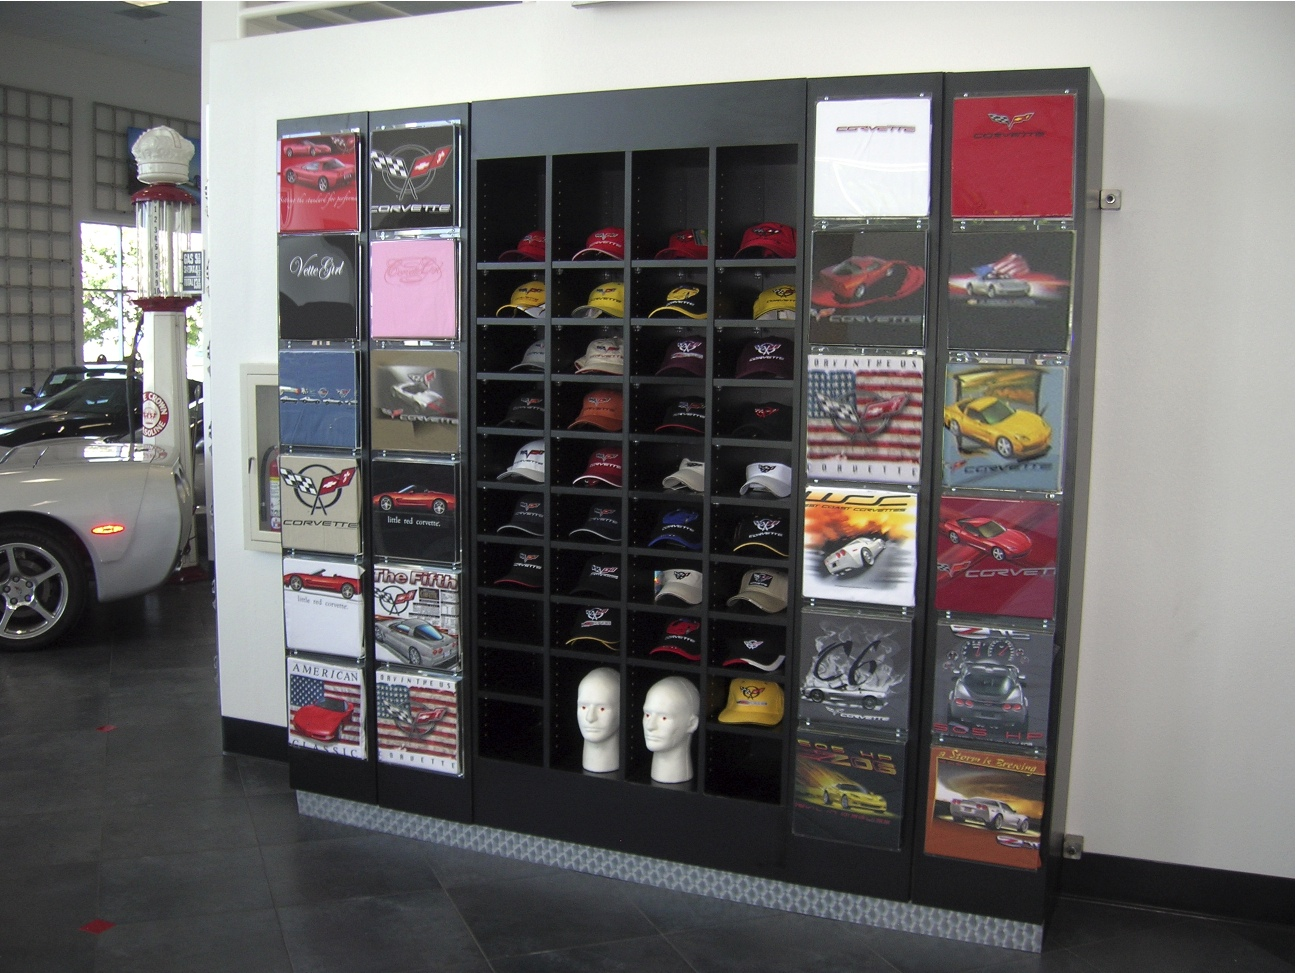 Lomar Specialty Advg from Concord NC USA Lomar Specialty Advg, Charlotte, NC, Looking for promotional products, advertising specialties and business gifts? You've come to the right site! Whether you are looking for a specific item or just browsing for ideas, our site is your one-stop source.